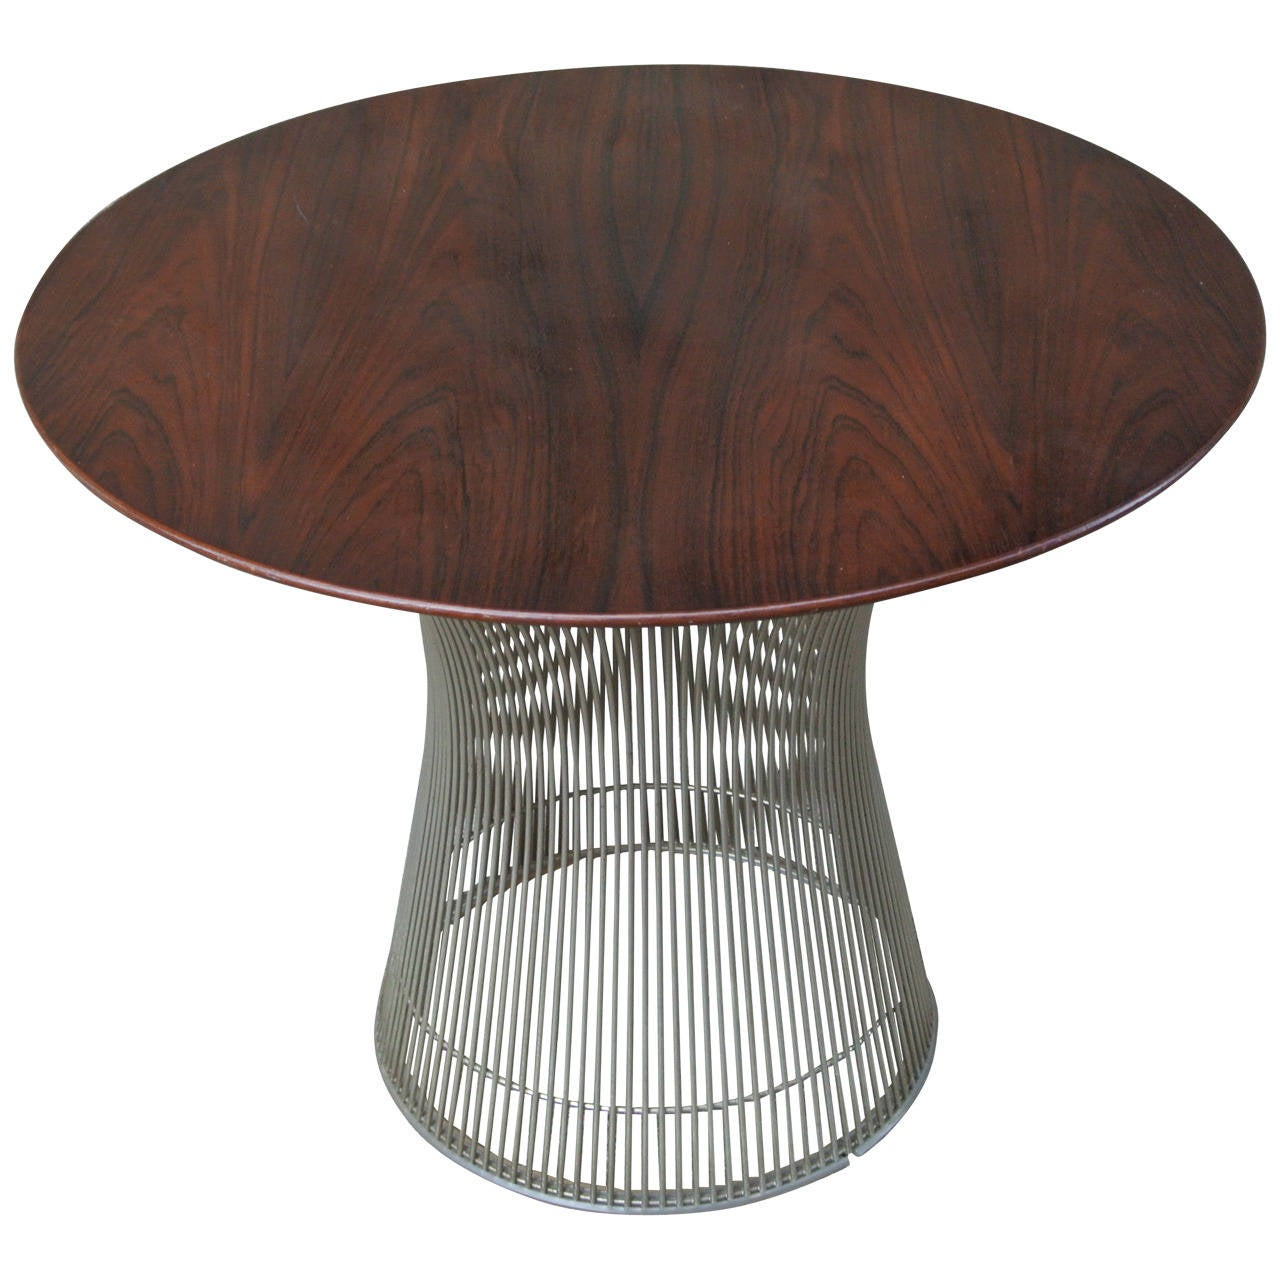 End table by warren platner for knoll at 1stdibs for Table warren platner